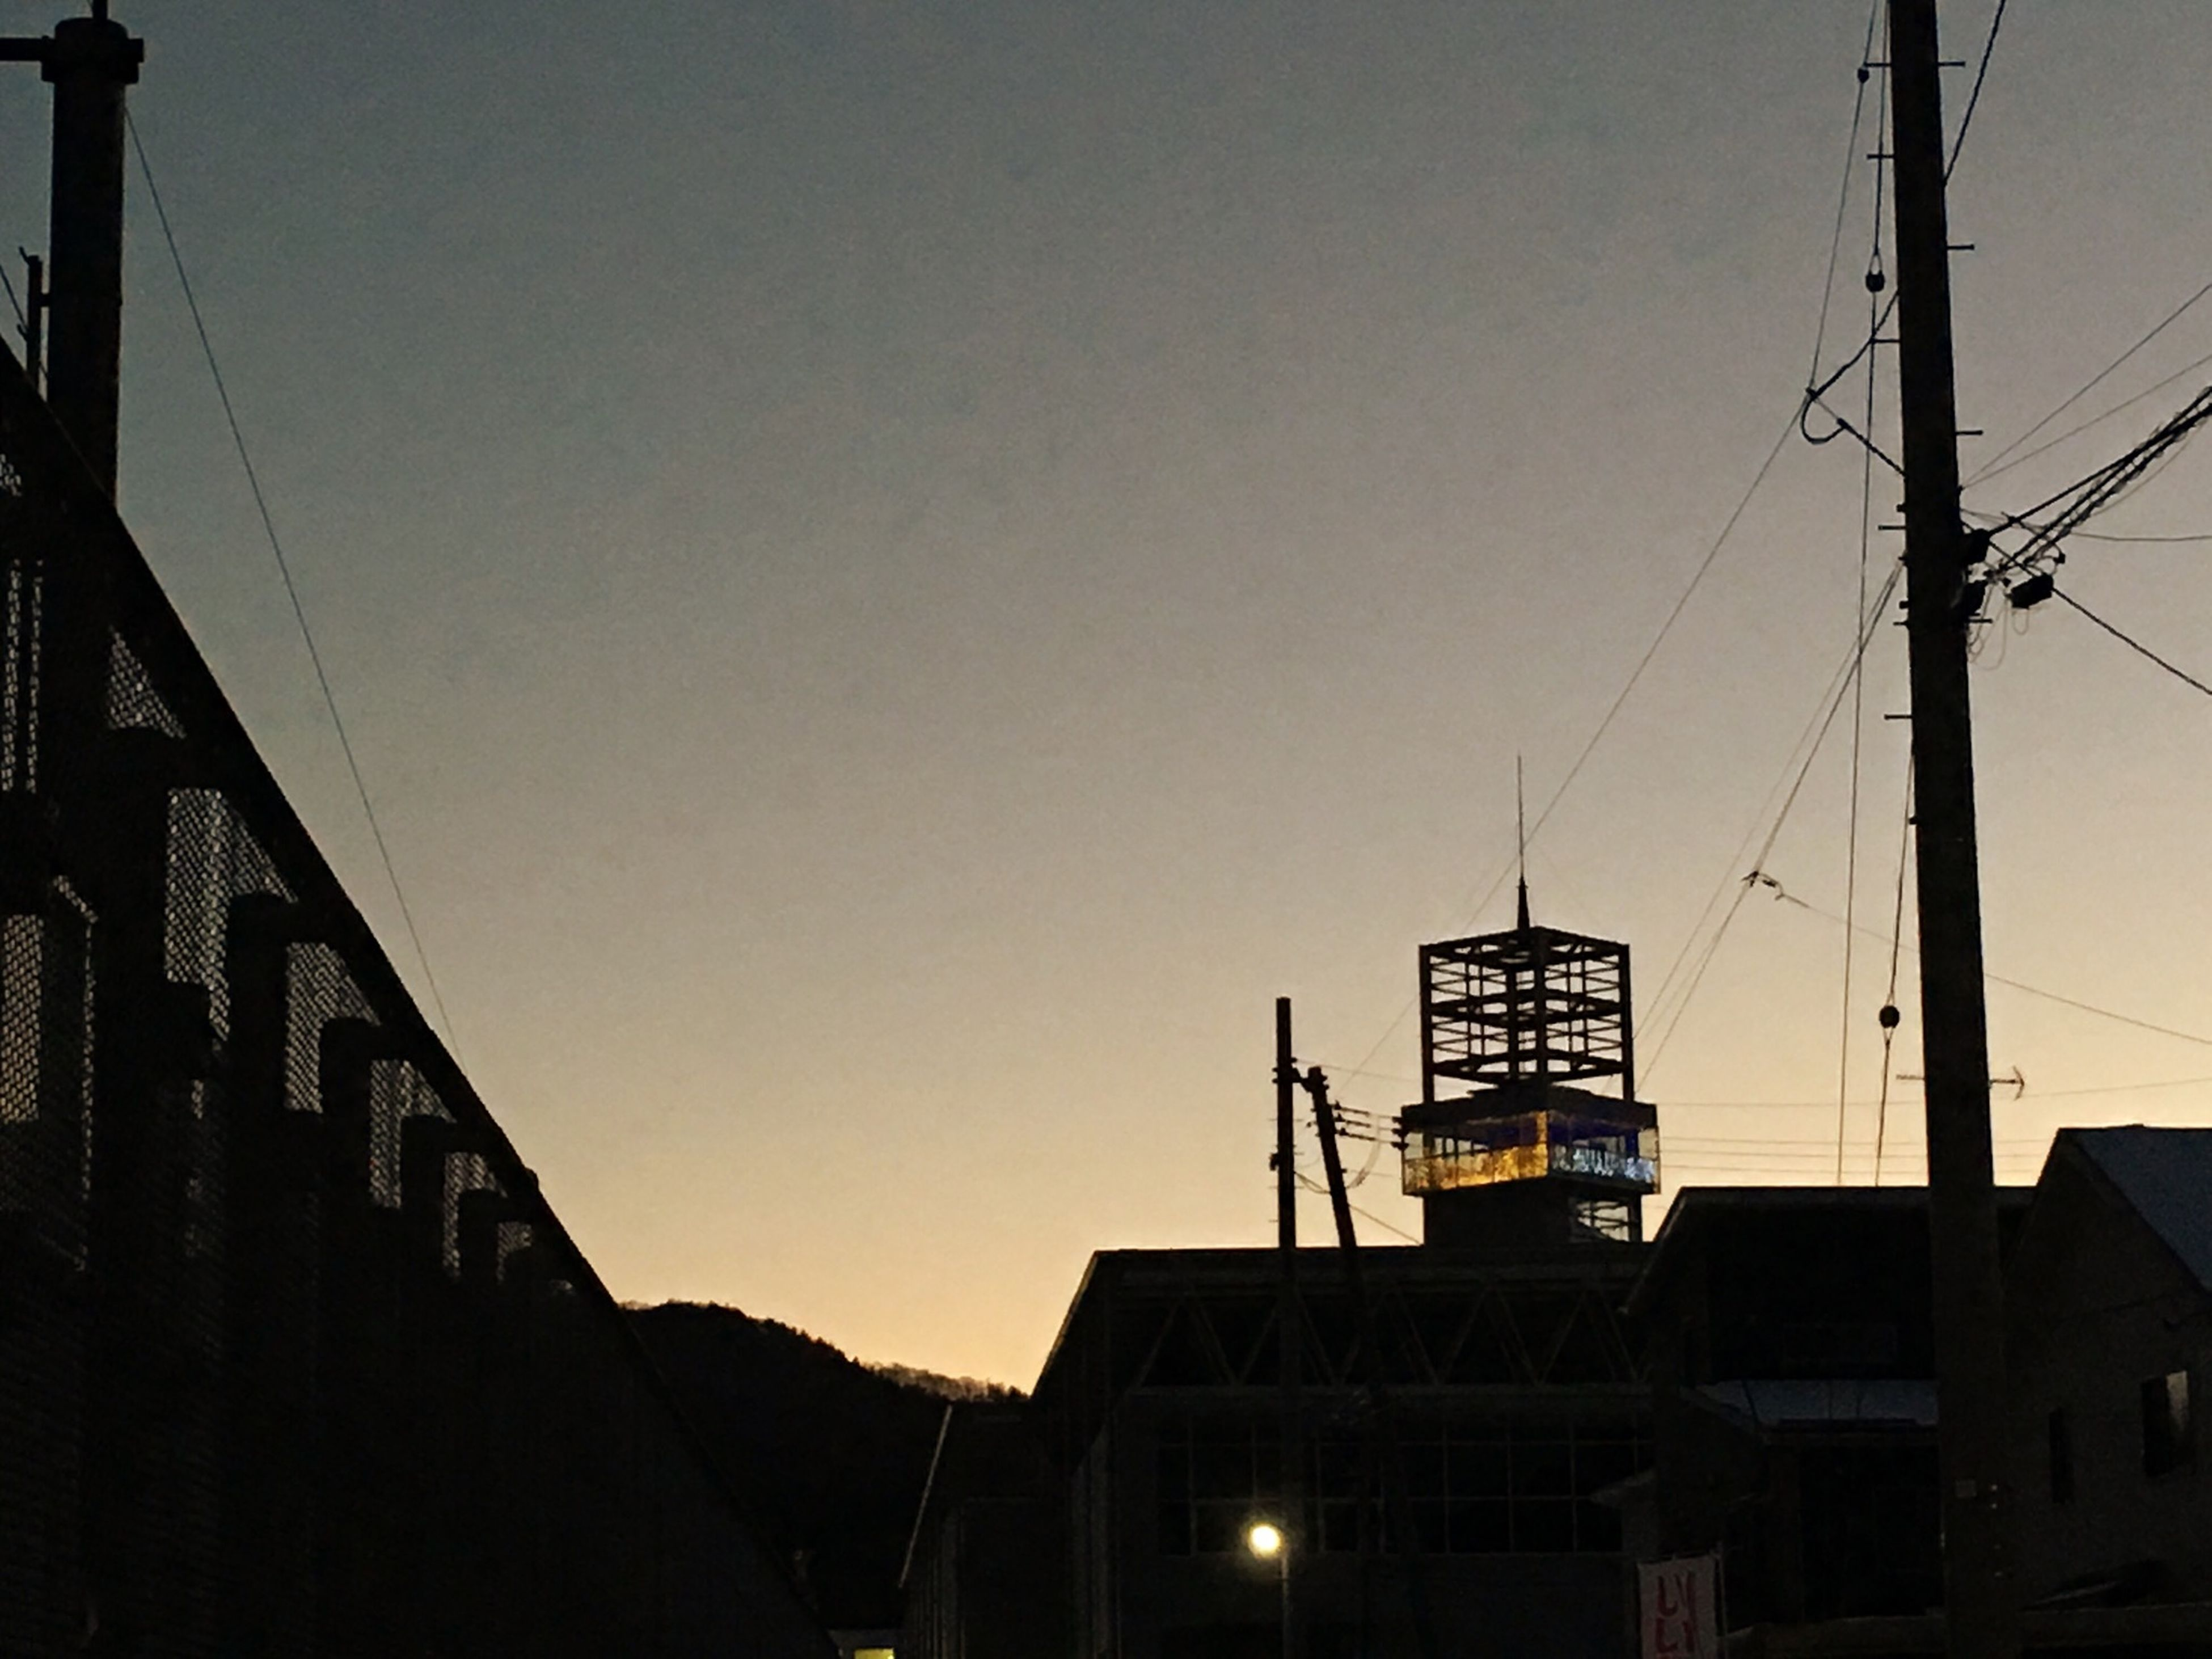 architecture, built structure, building exterior, clear sky, low angle view, copy space, silhouette, building, residential building, power line, street light, construction site, sunset, dusk, outdoors, city, sky, residential structure, cable, crane - construction machinery